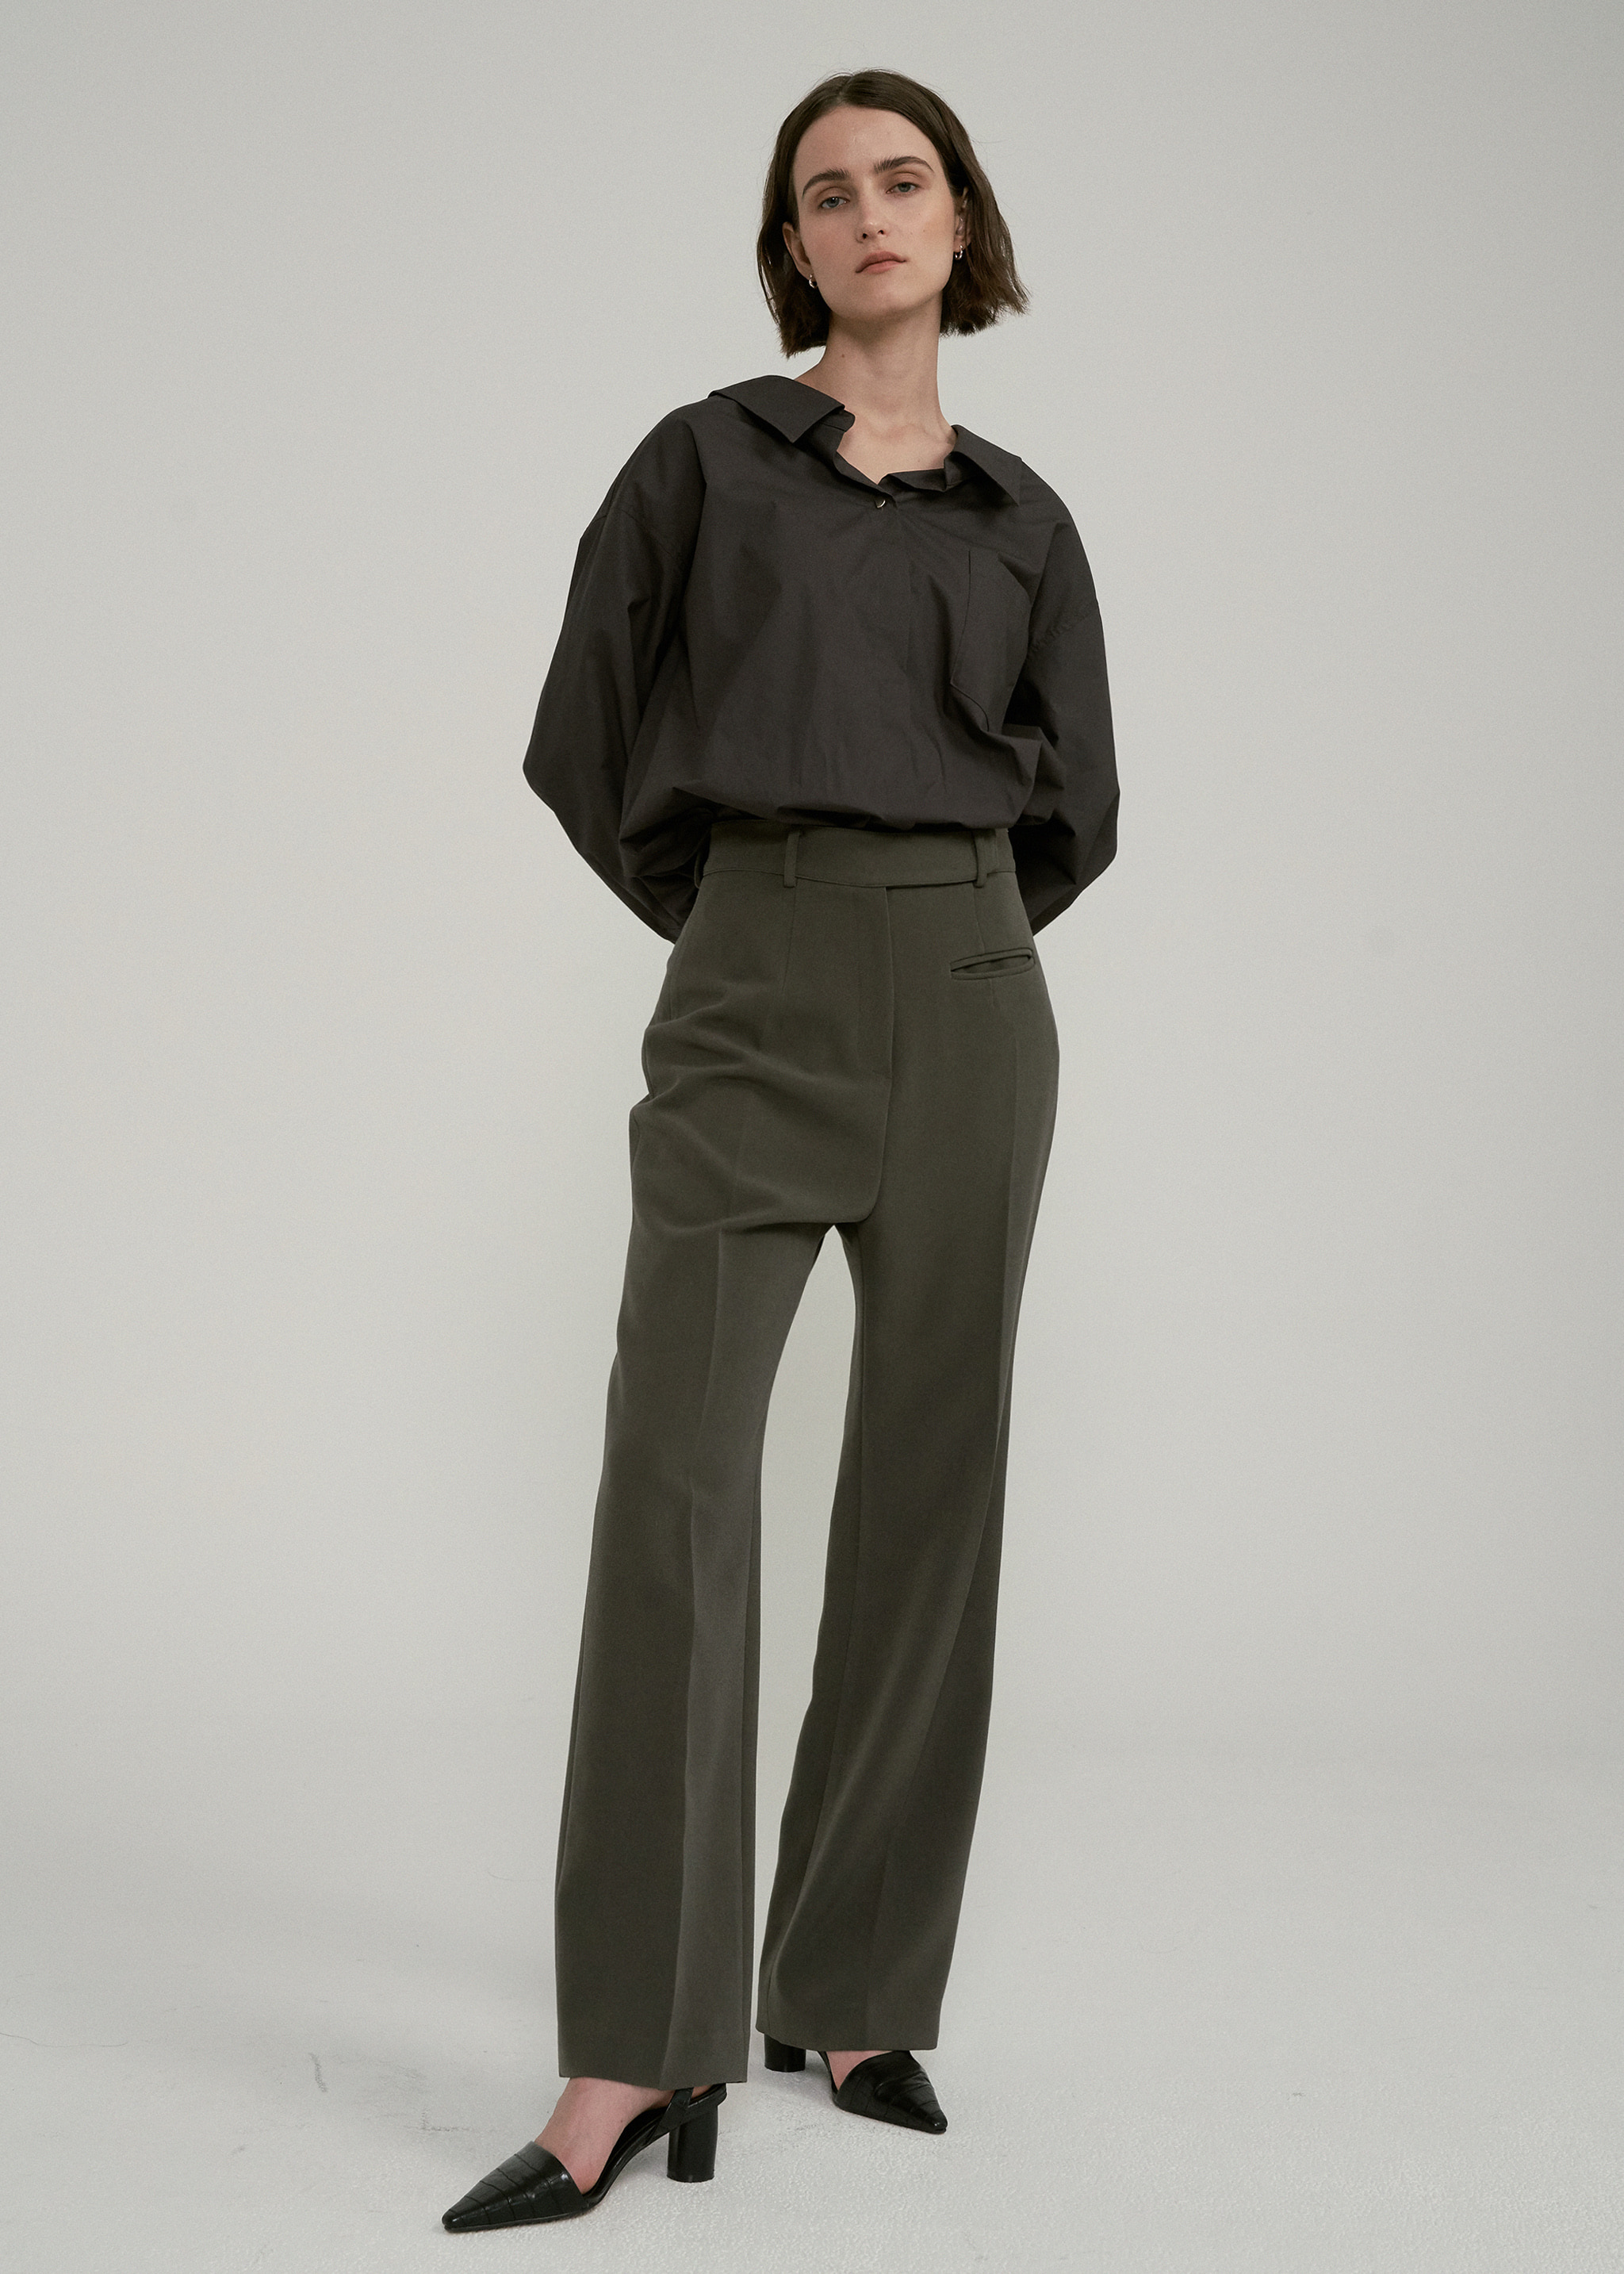 HIGH WAIST BUTTON POCKET PANTS (KHAKI)